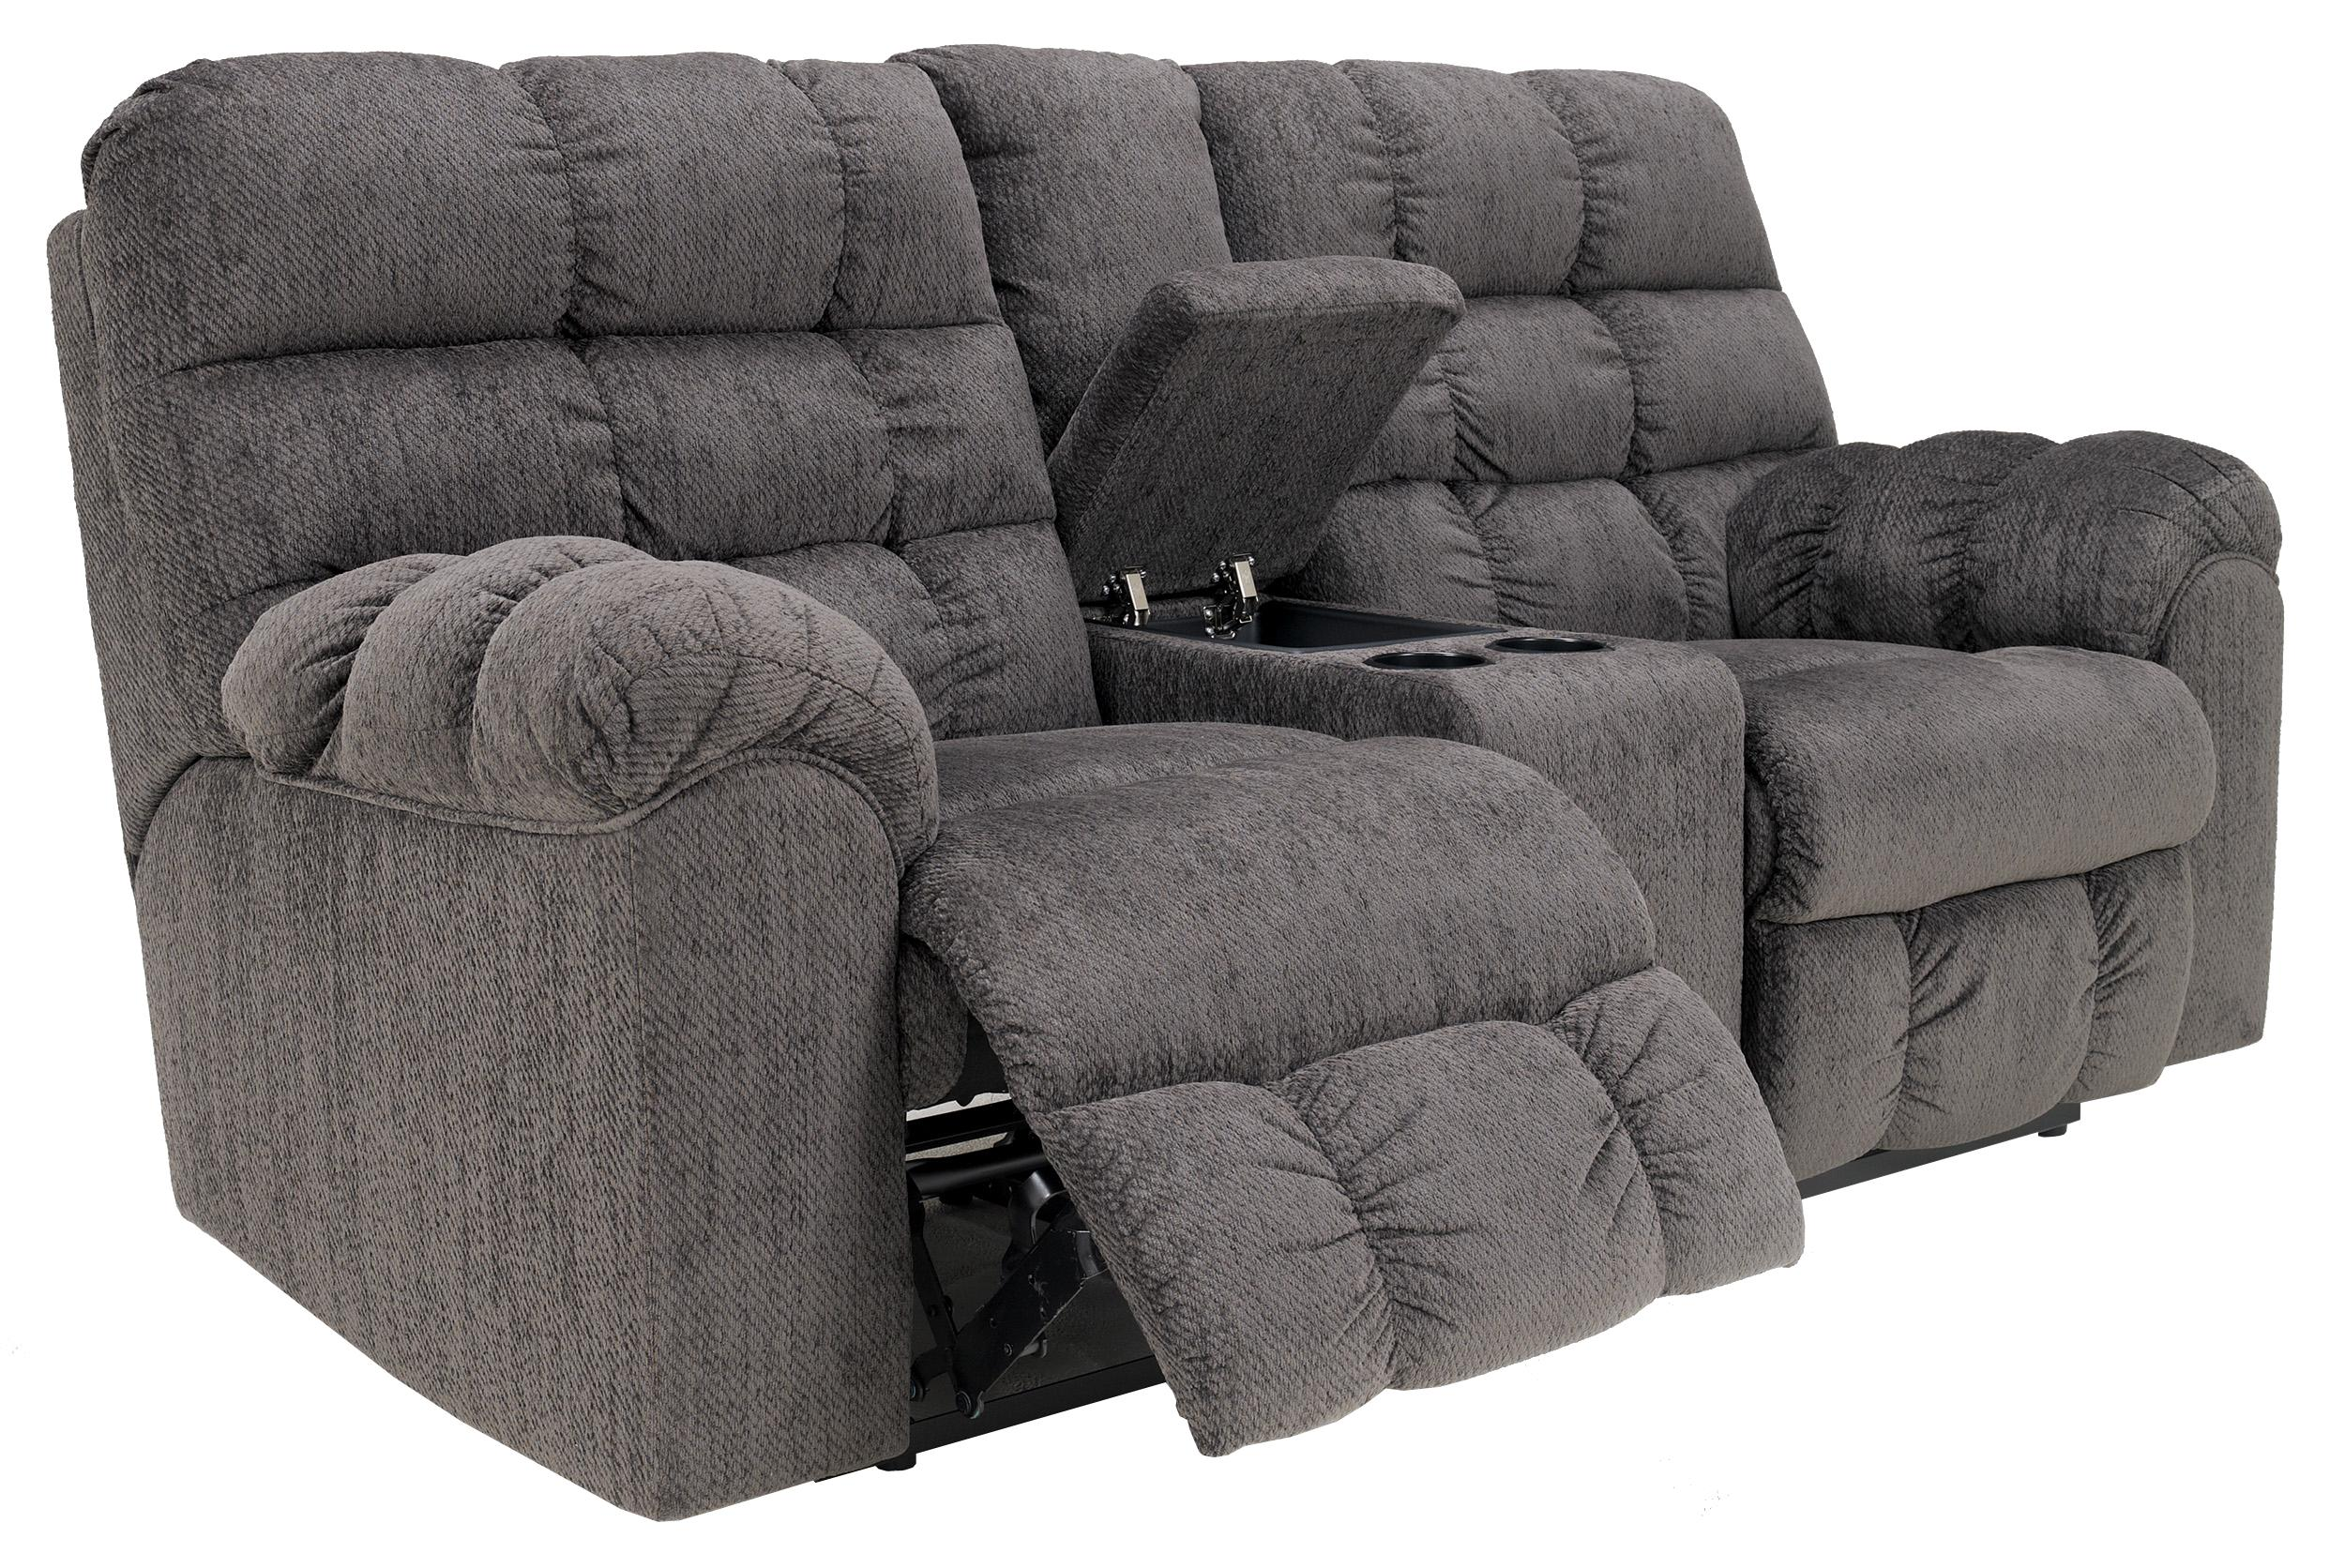 Double reclining loveseat with console and cup holders by signature design by ashley wolf and Loveseat with cup holders